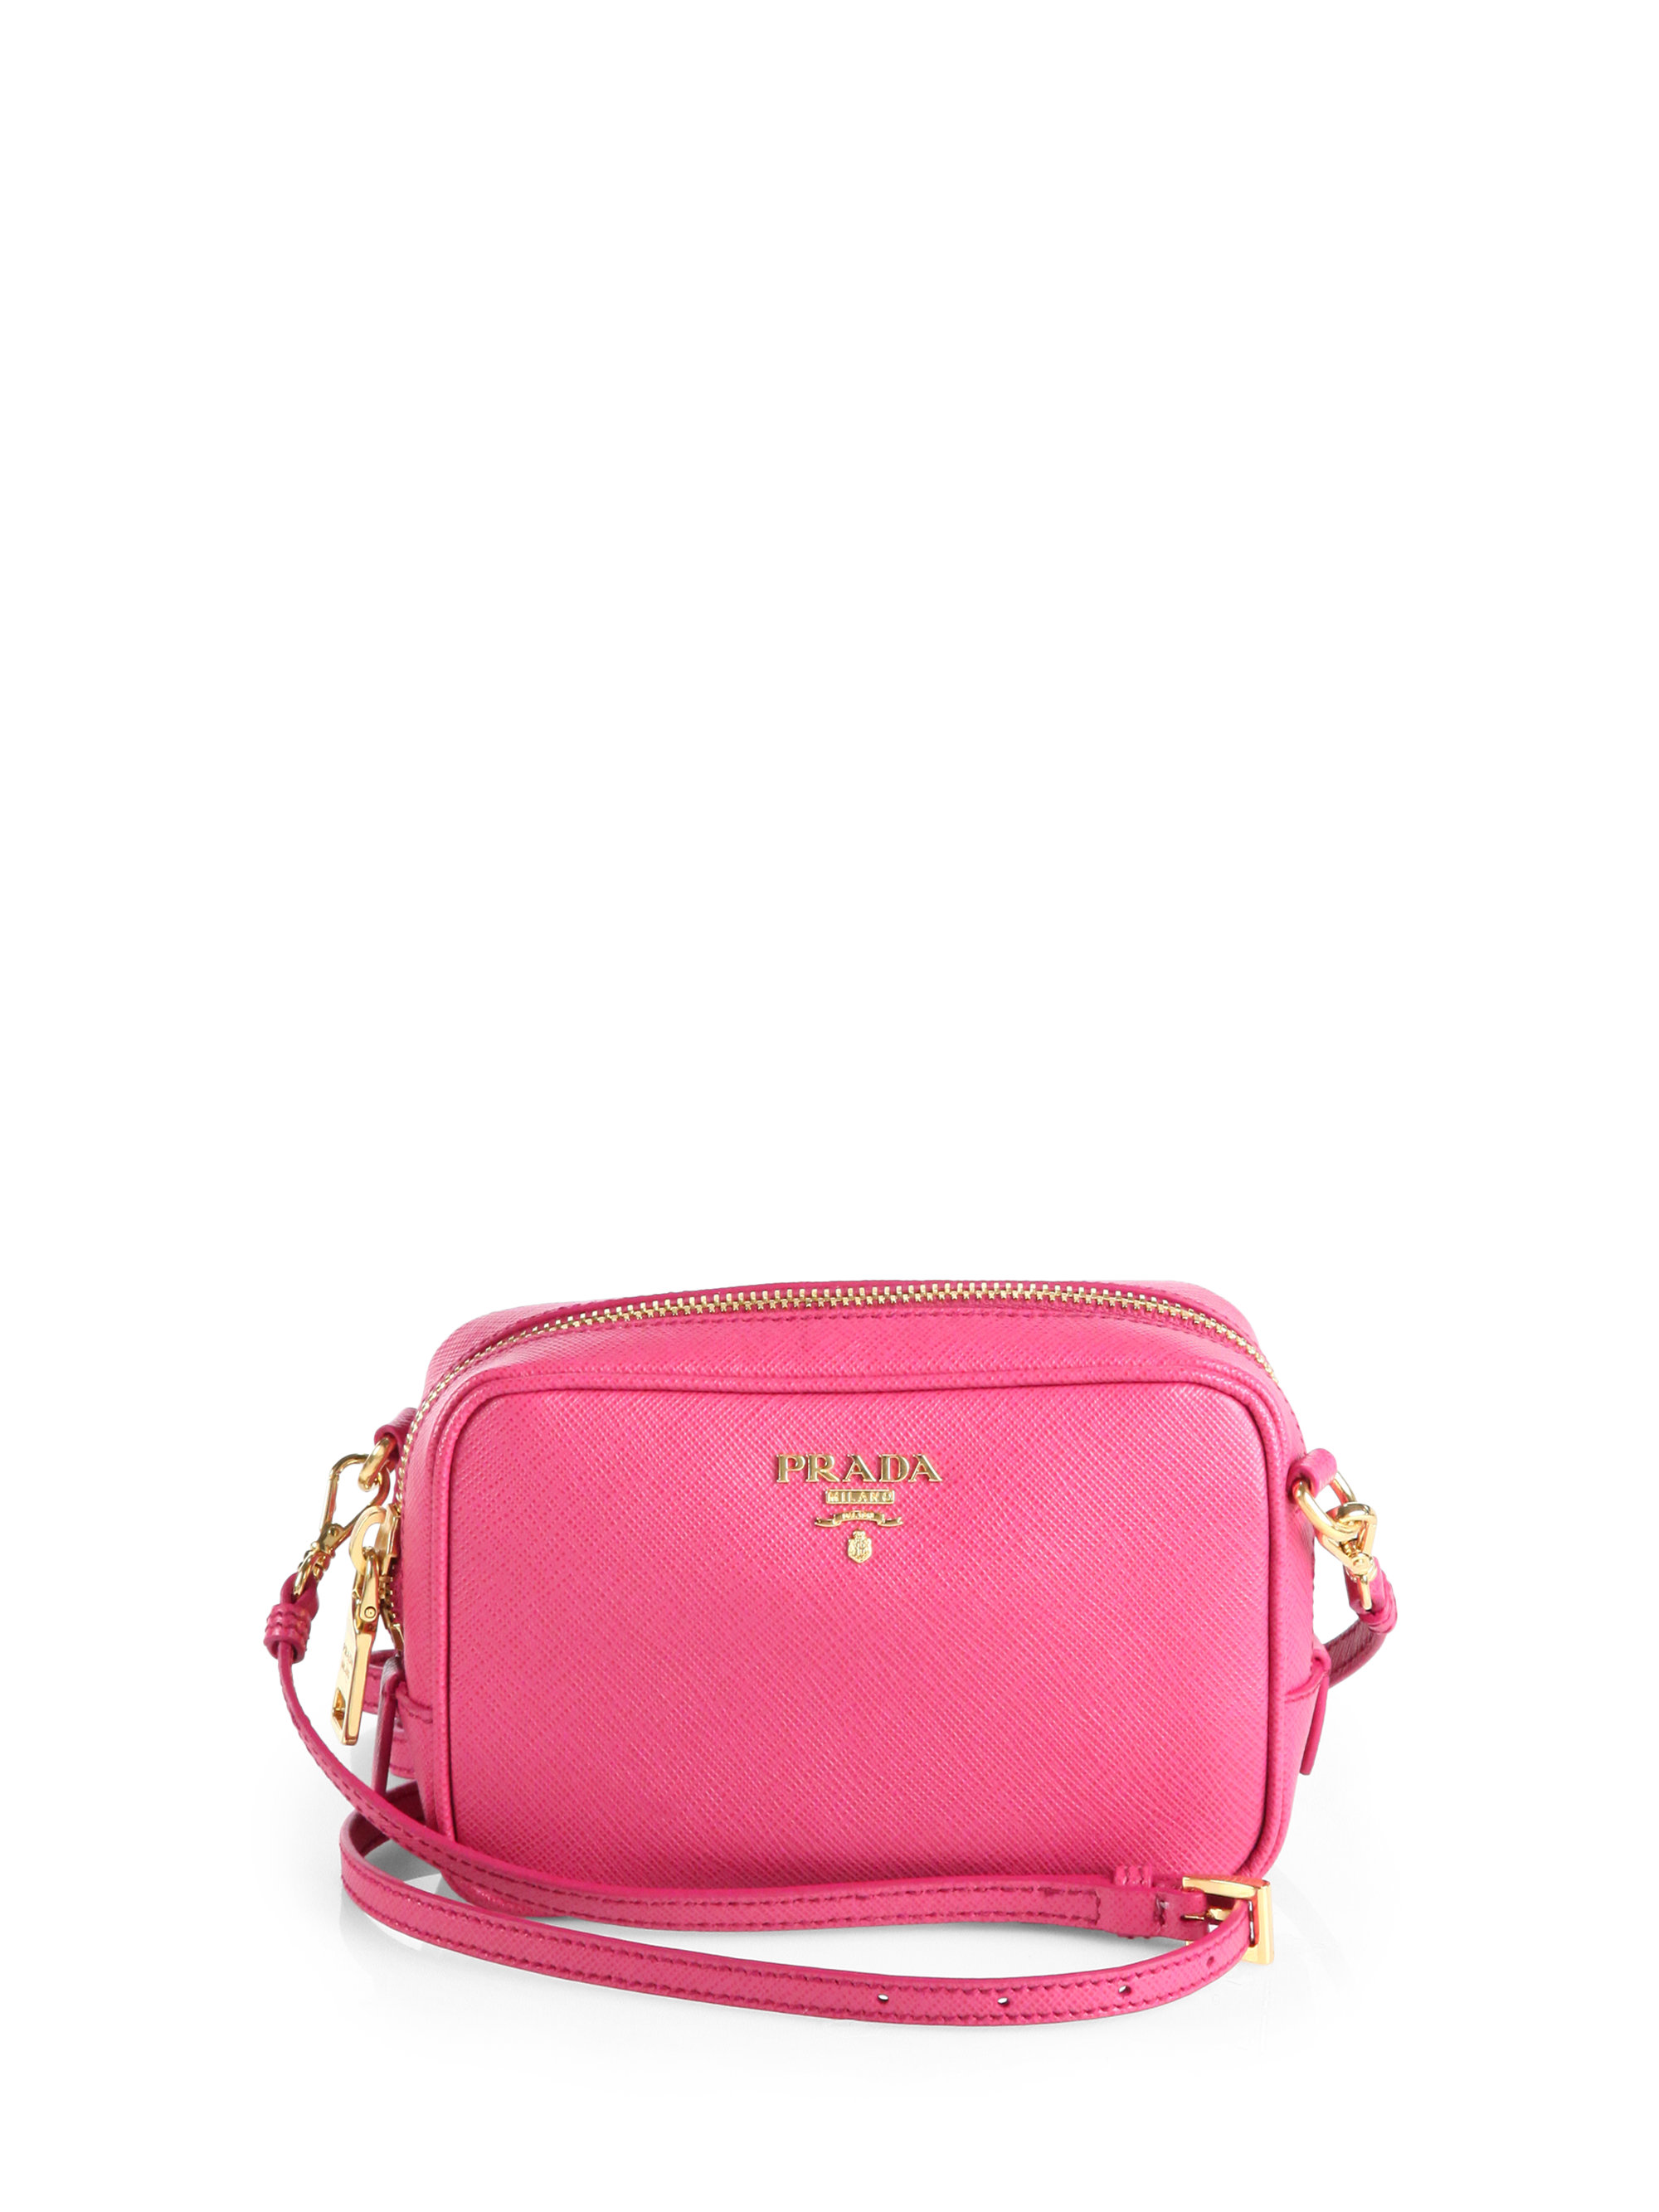 prada silver handbag - Prada Saffiano Leather Camera Bag in Pink (PEONIA-PINK) | Lyst